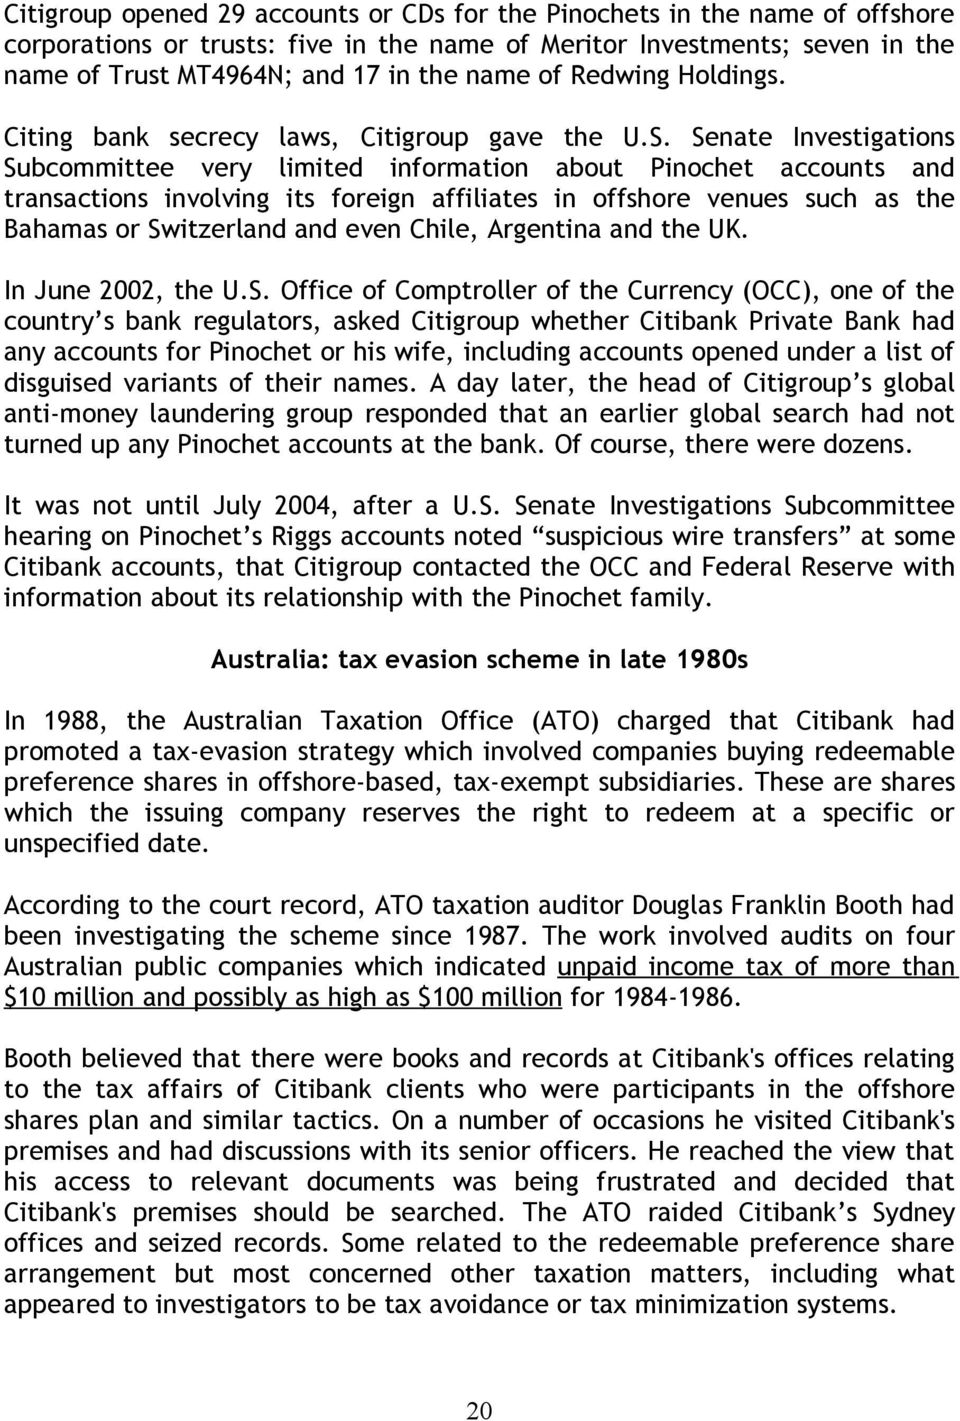 Senate Investigations Subcommittee very limited information about Pinochet accounts and transactions involving its foreign affiliates in offshore venues such as the Bahamas or Switzerland and even